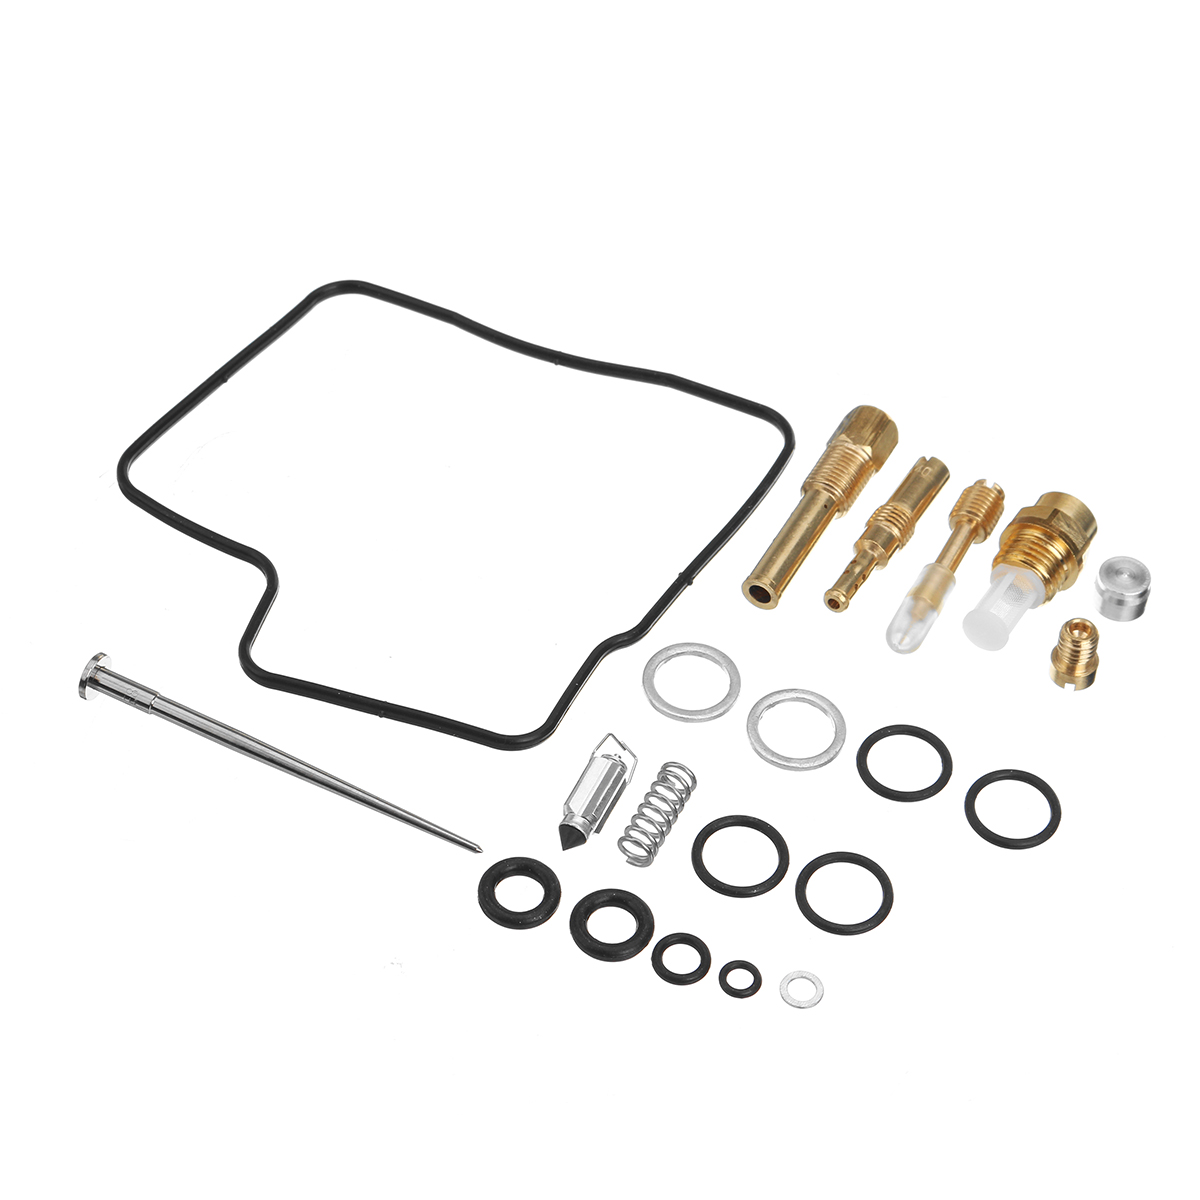 Carburetor rebuild kit set fit for honda vt700 vt750